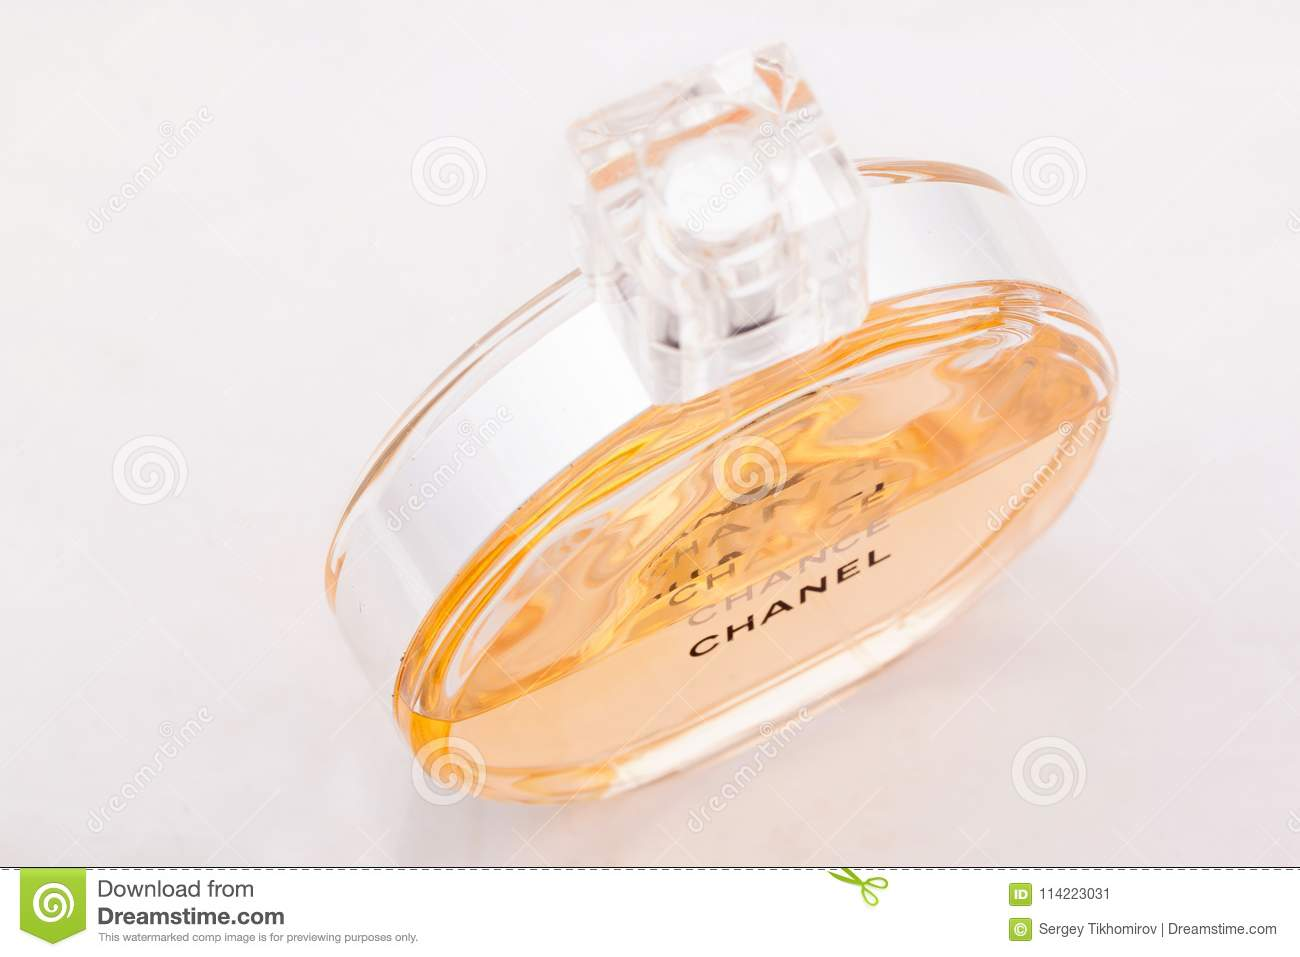 Russia Izhevsk June 13 2017 Chanel Chance Refinement Perfume